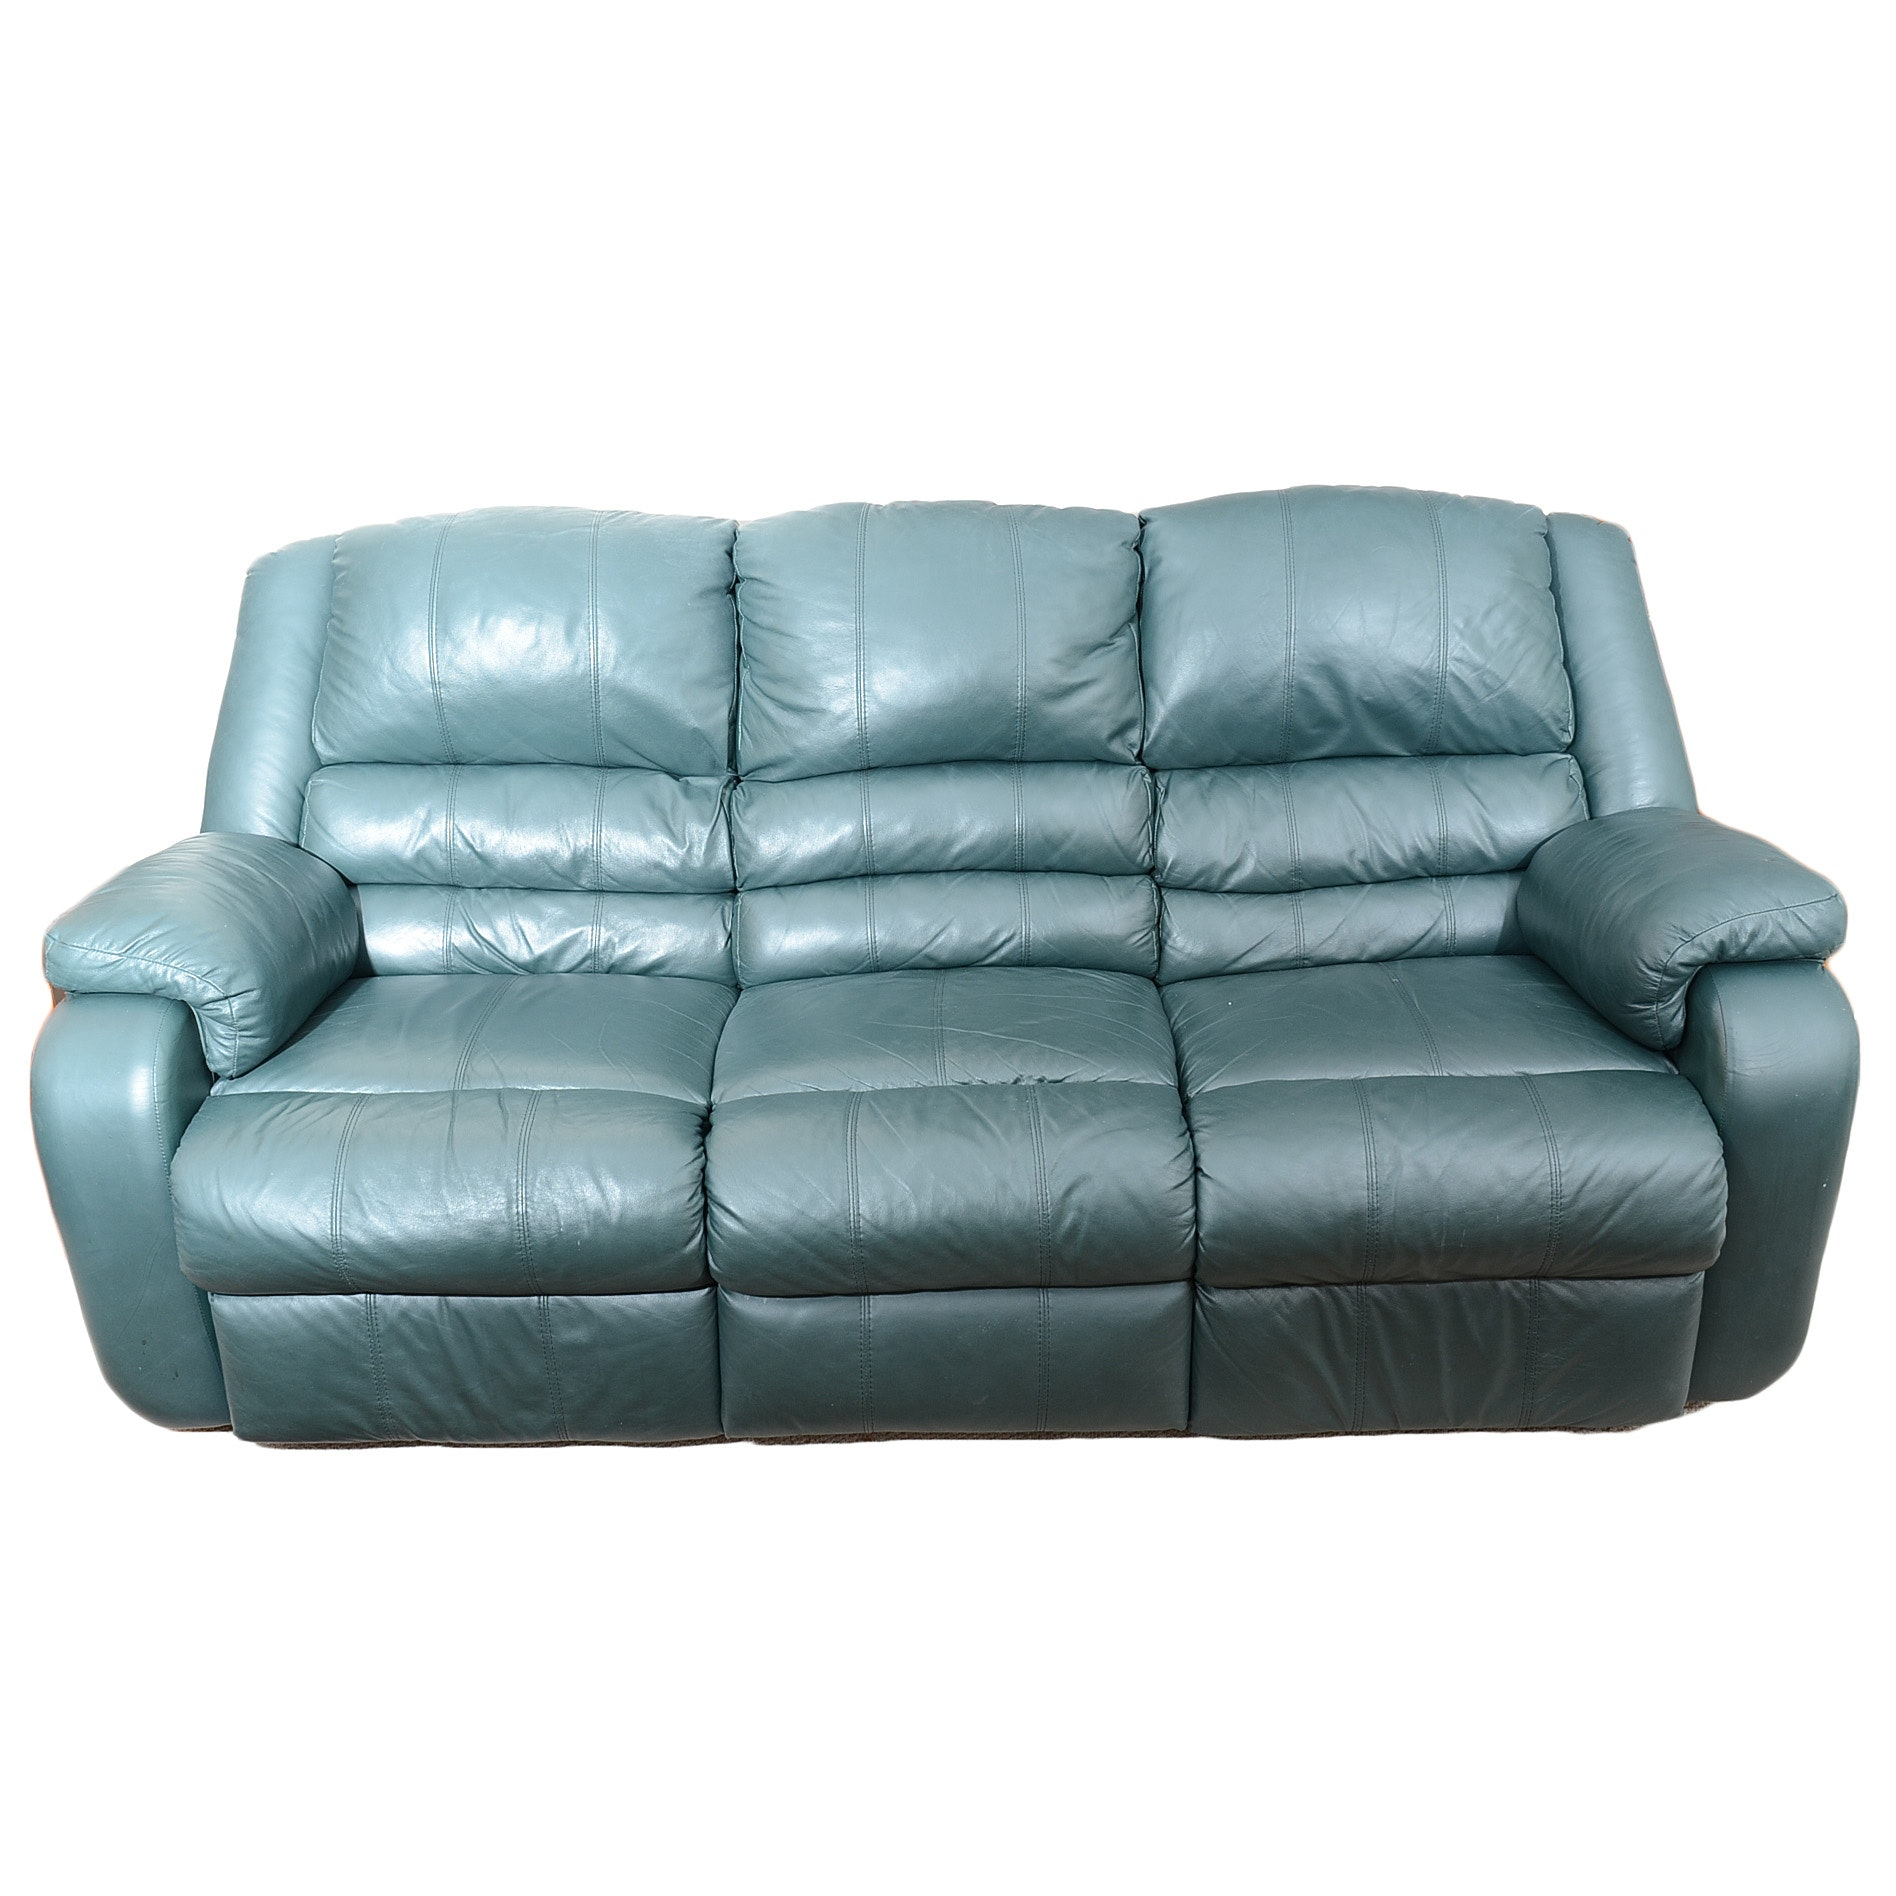 Sofa Express Hunter Green Leather Reclining Sofa ...